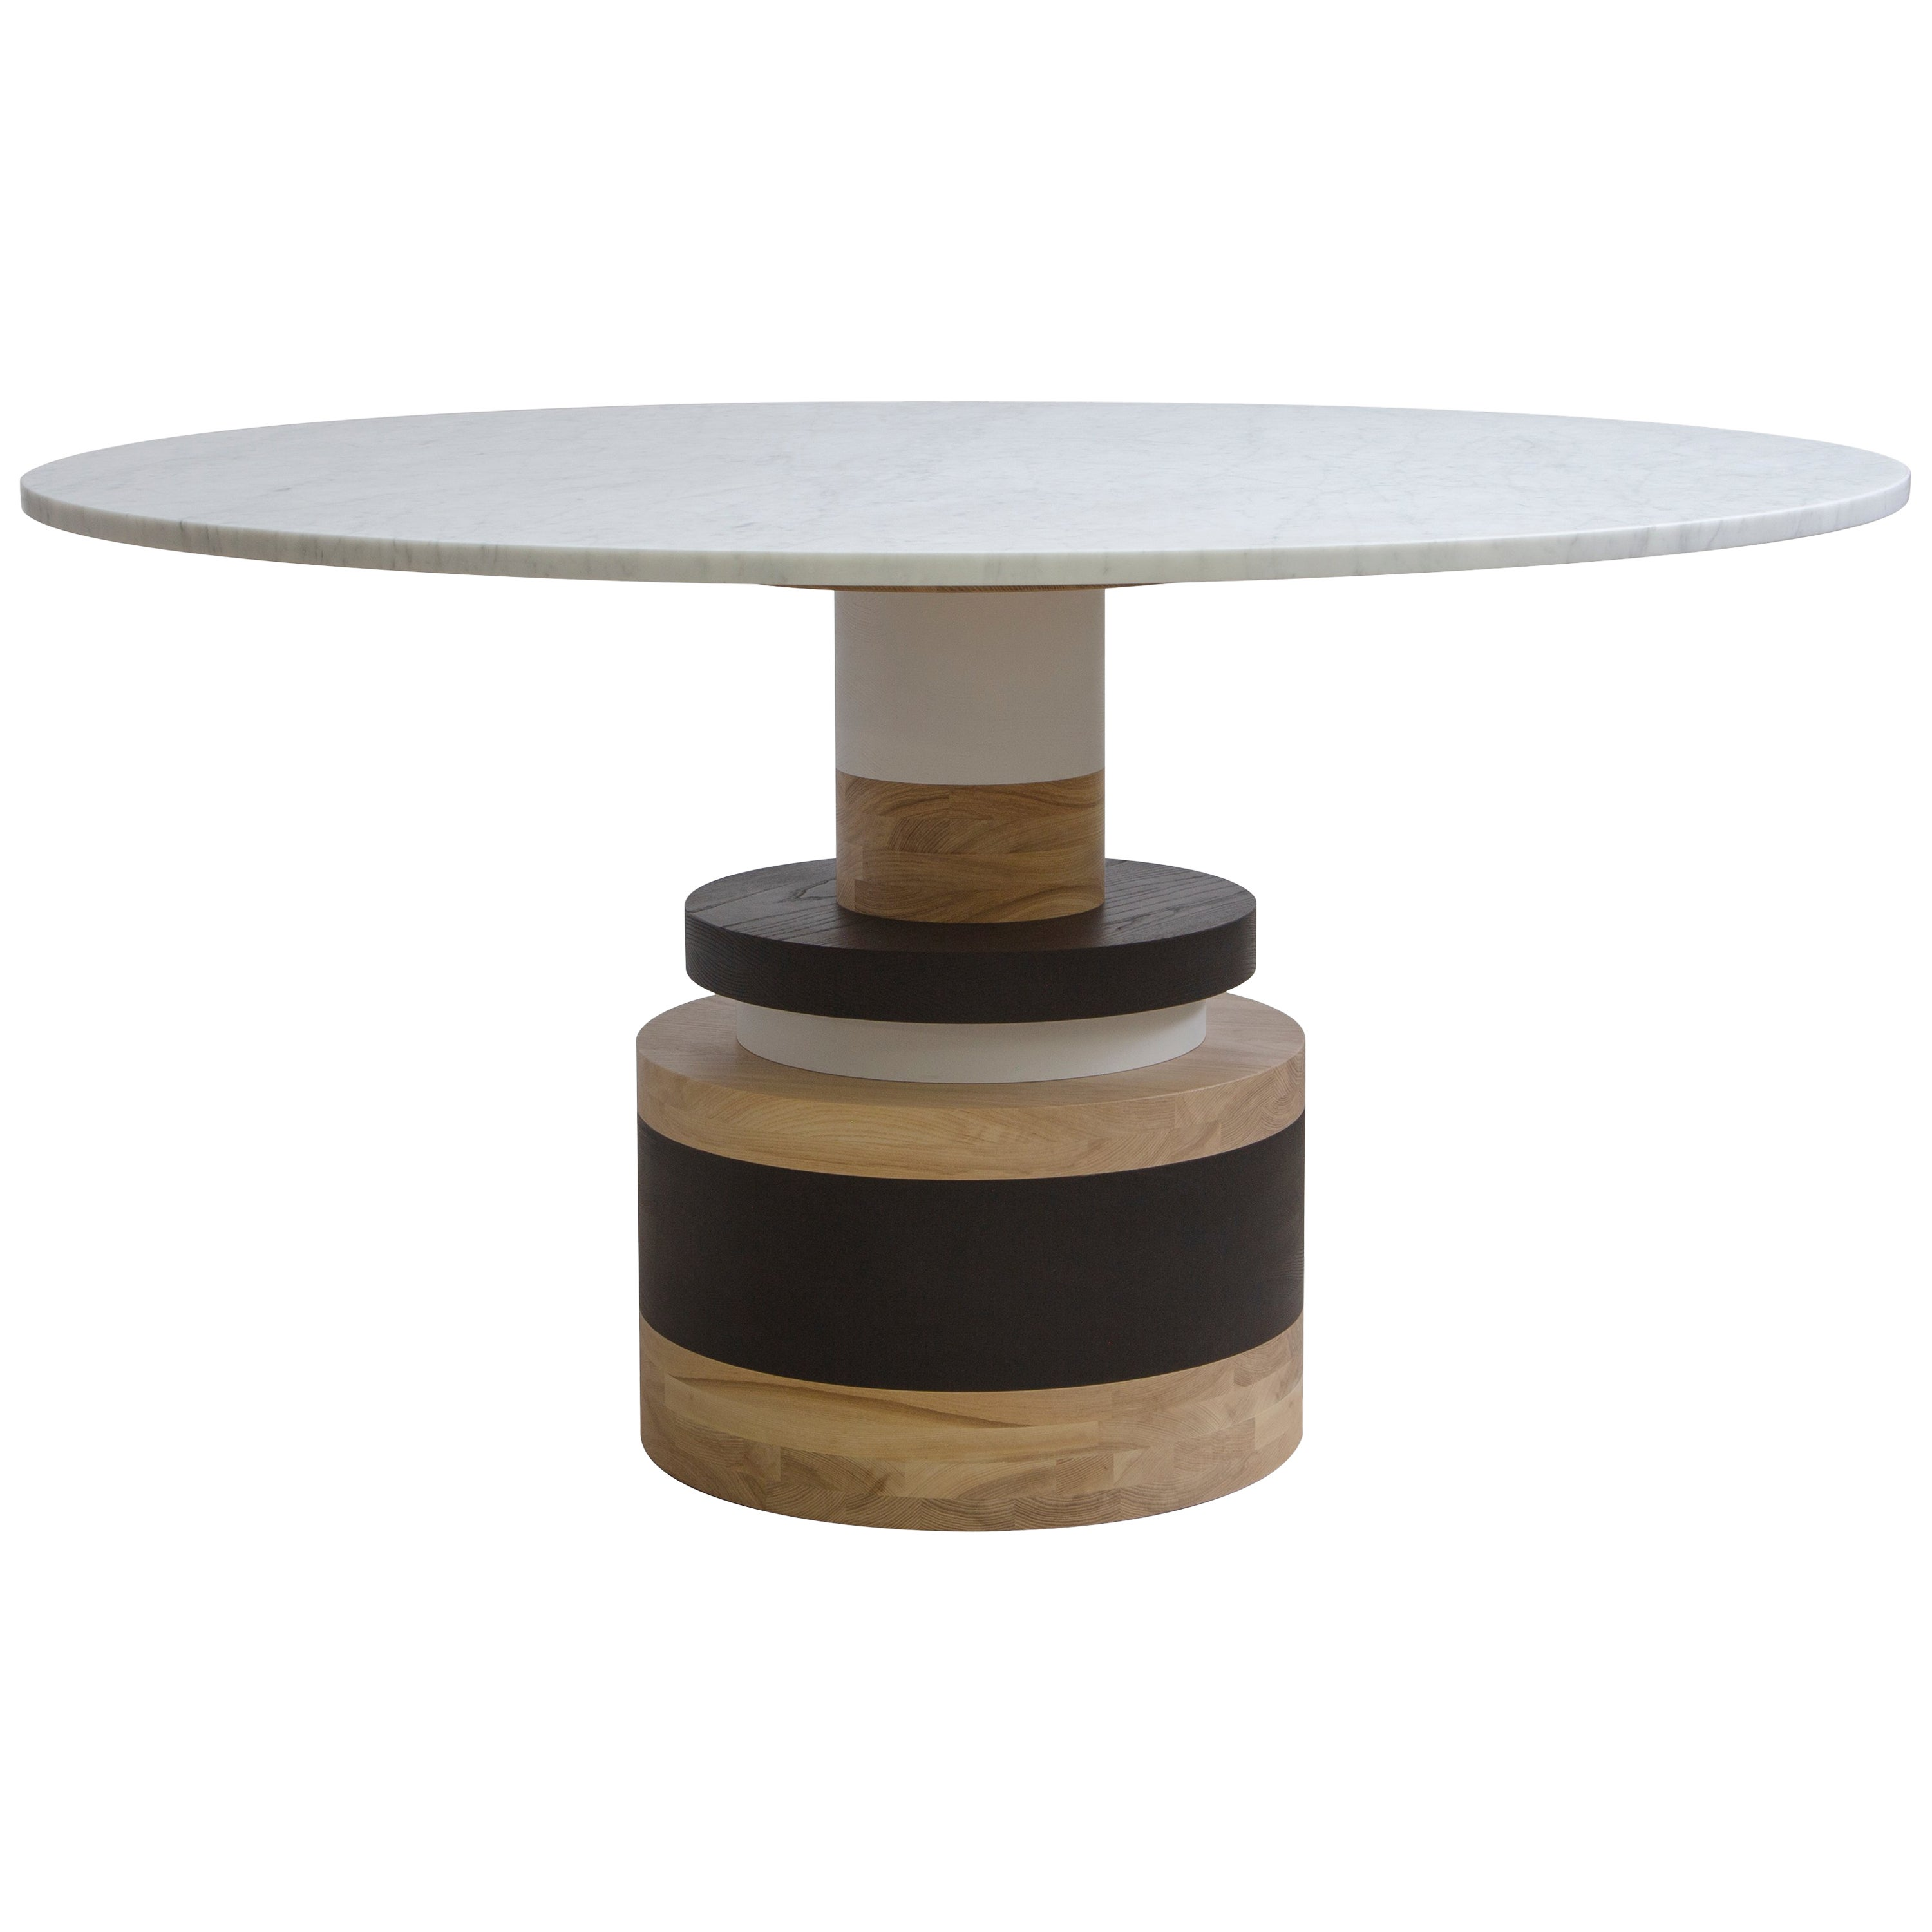 Customizable Sass Dining Table from Souda, Medium, White Marble Top